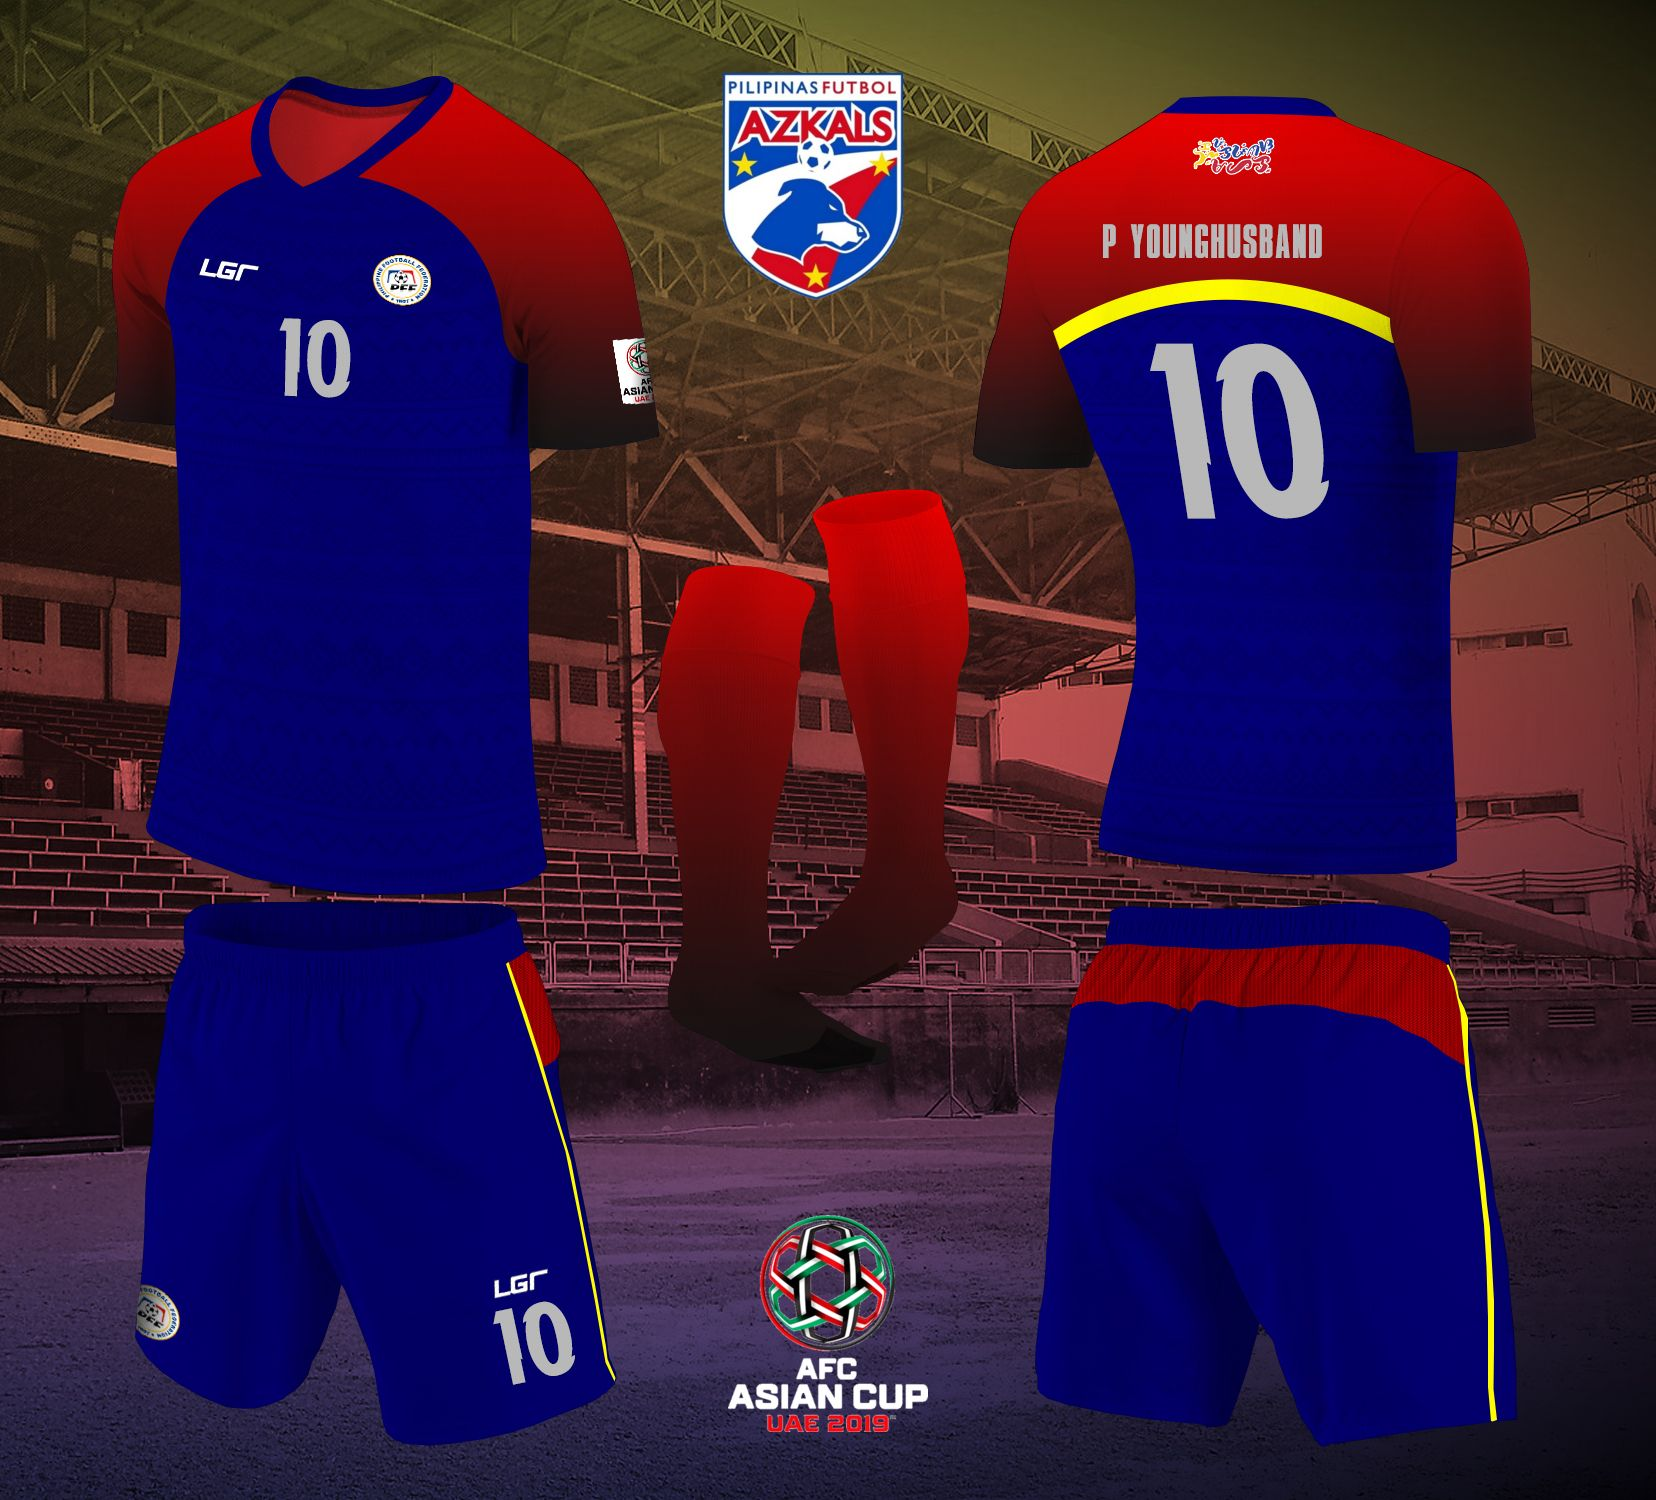 This is a mock up design of the Philippine Azkals kit for the 2019 AFC  Asian Cup in the United Arab Emirates. e19af1e69